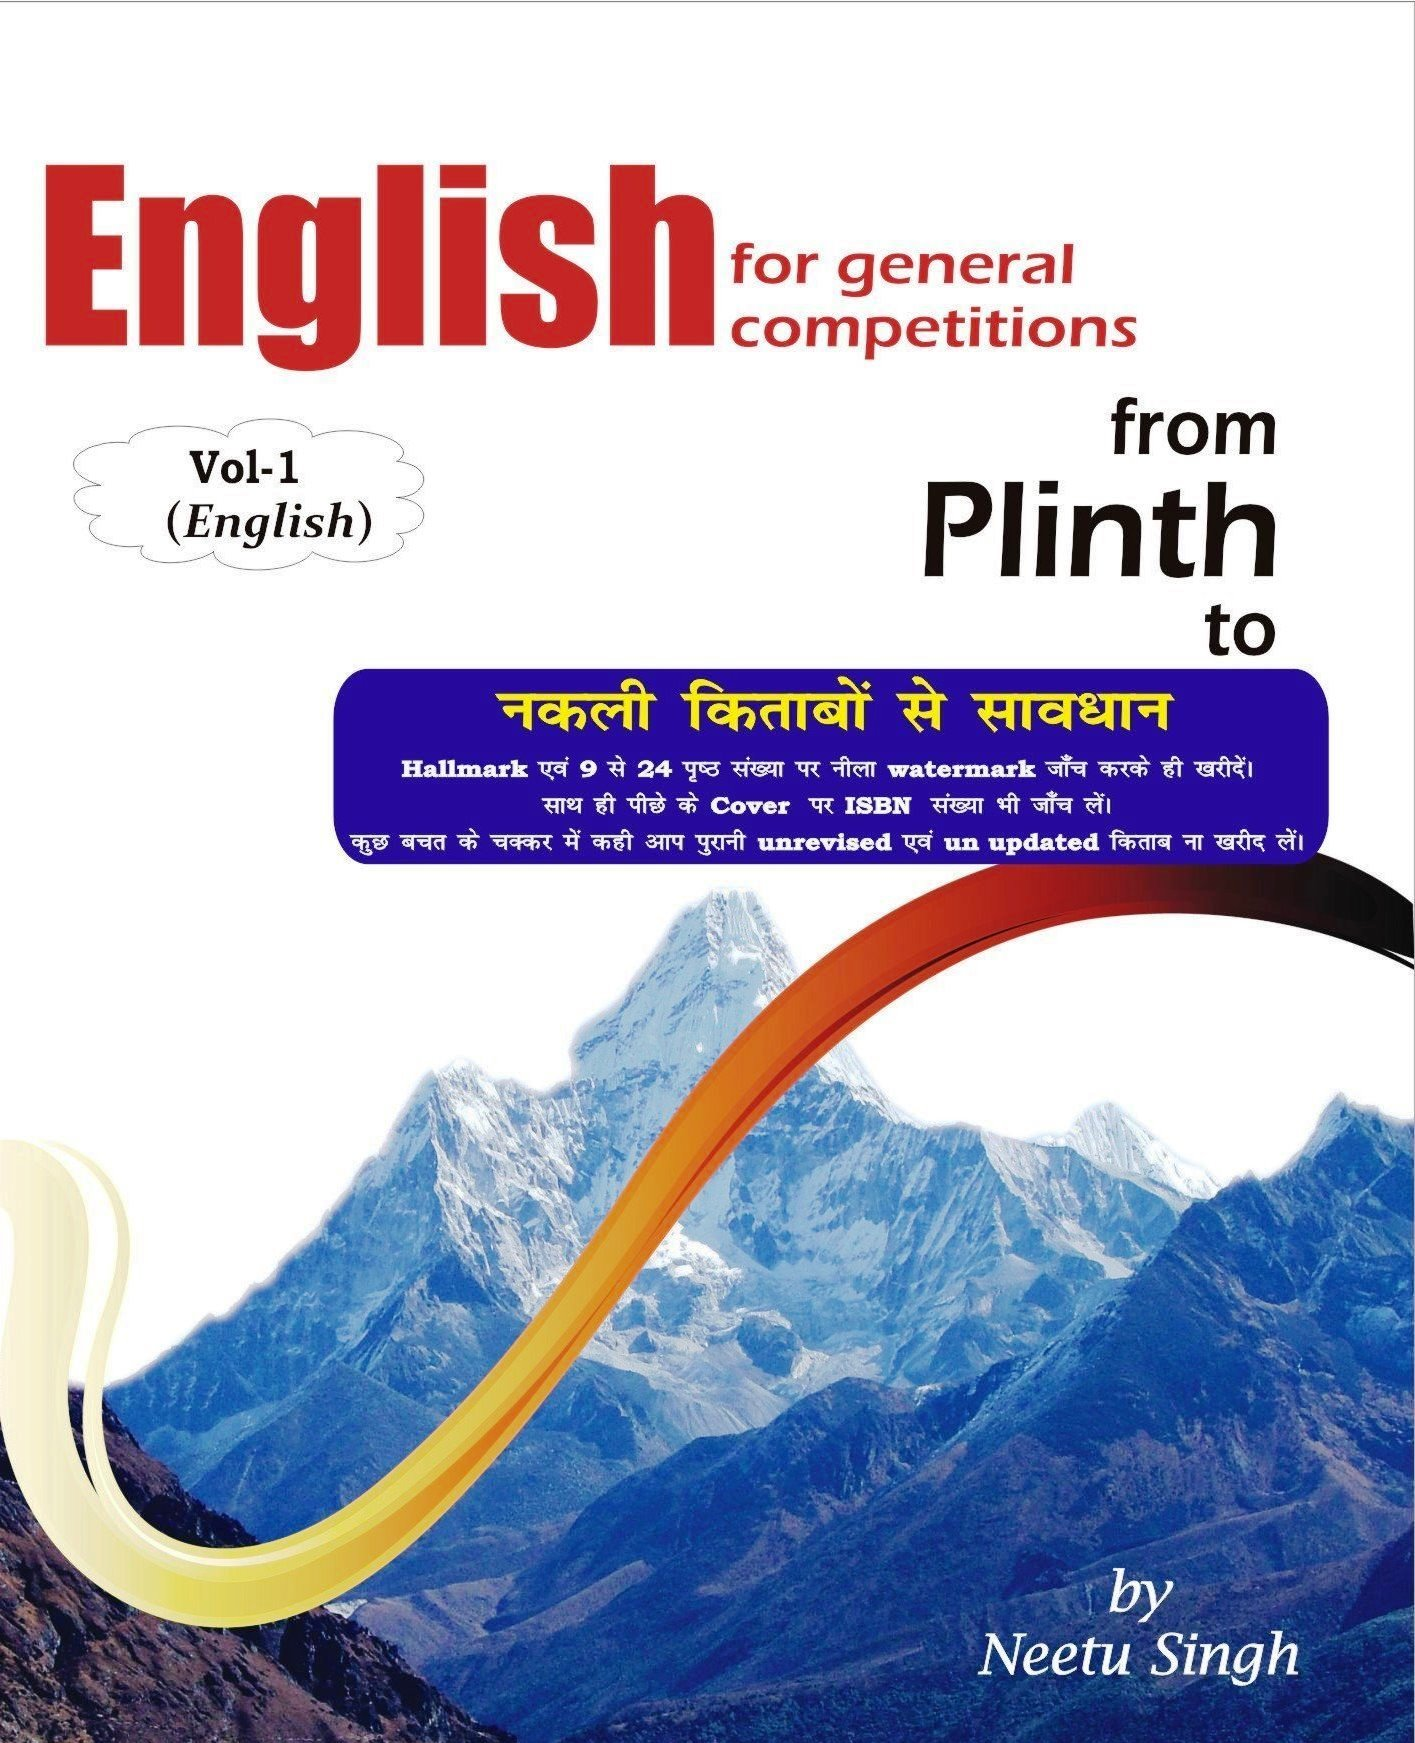 Paramount English Volume 1 Book Download (Plinth to Paramount)